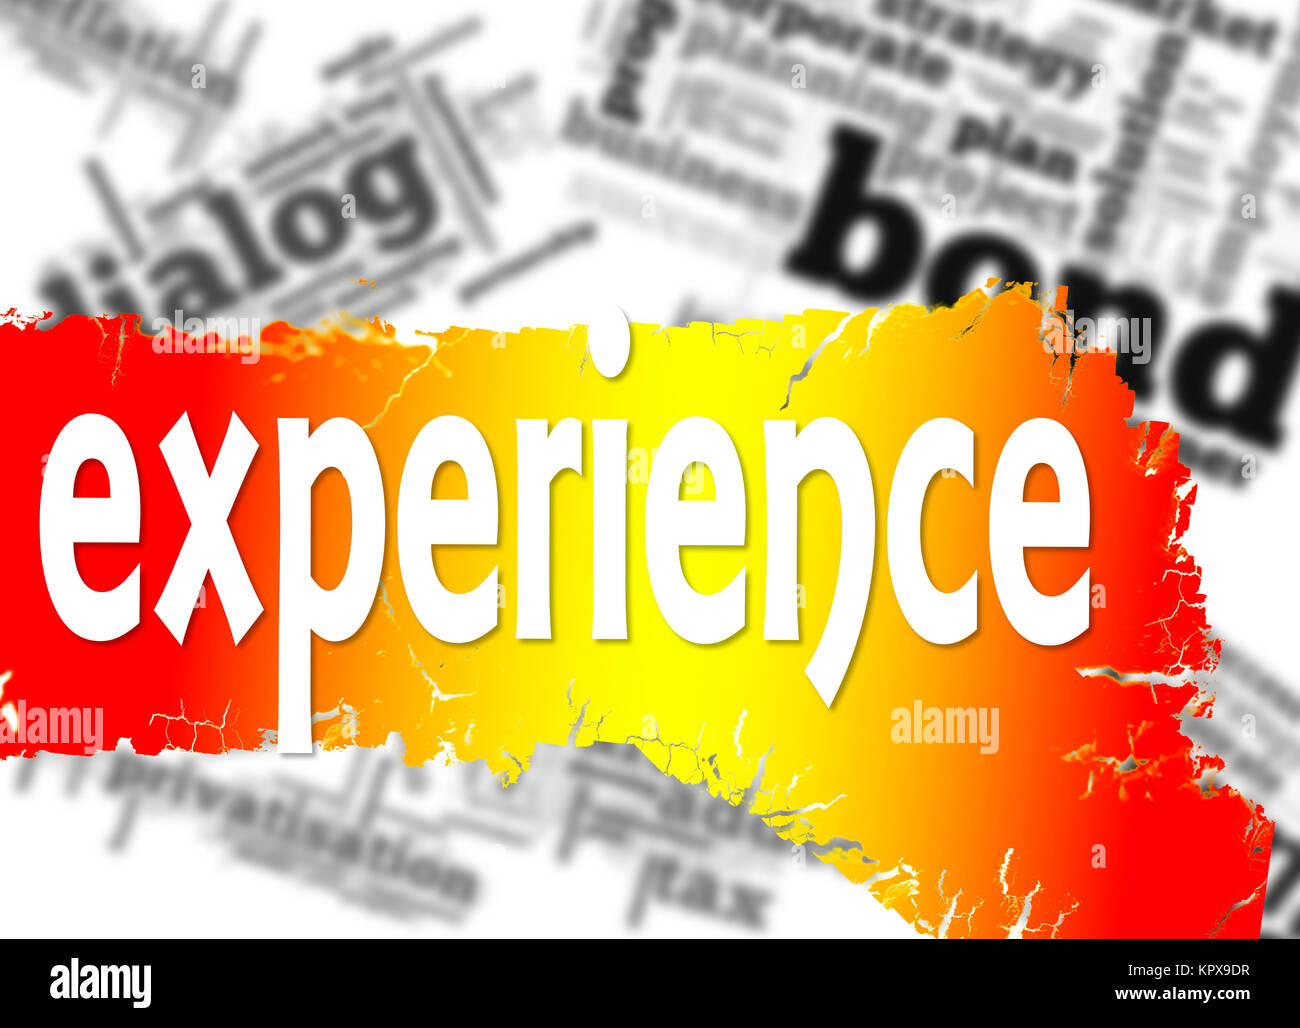 Word cloud with experience word - Stock Image